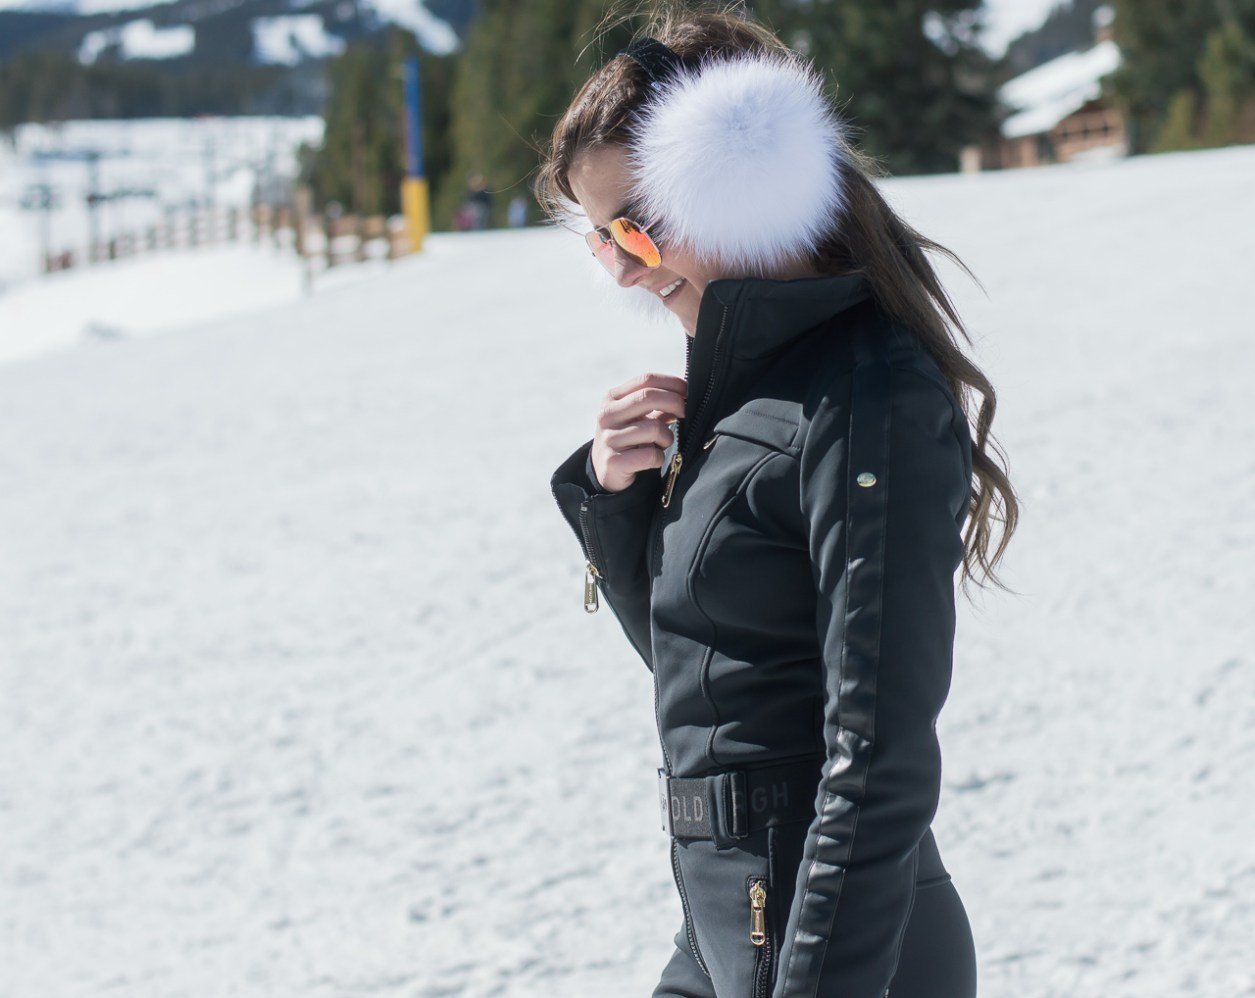 Chic Ski Outfit